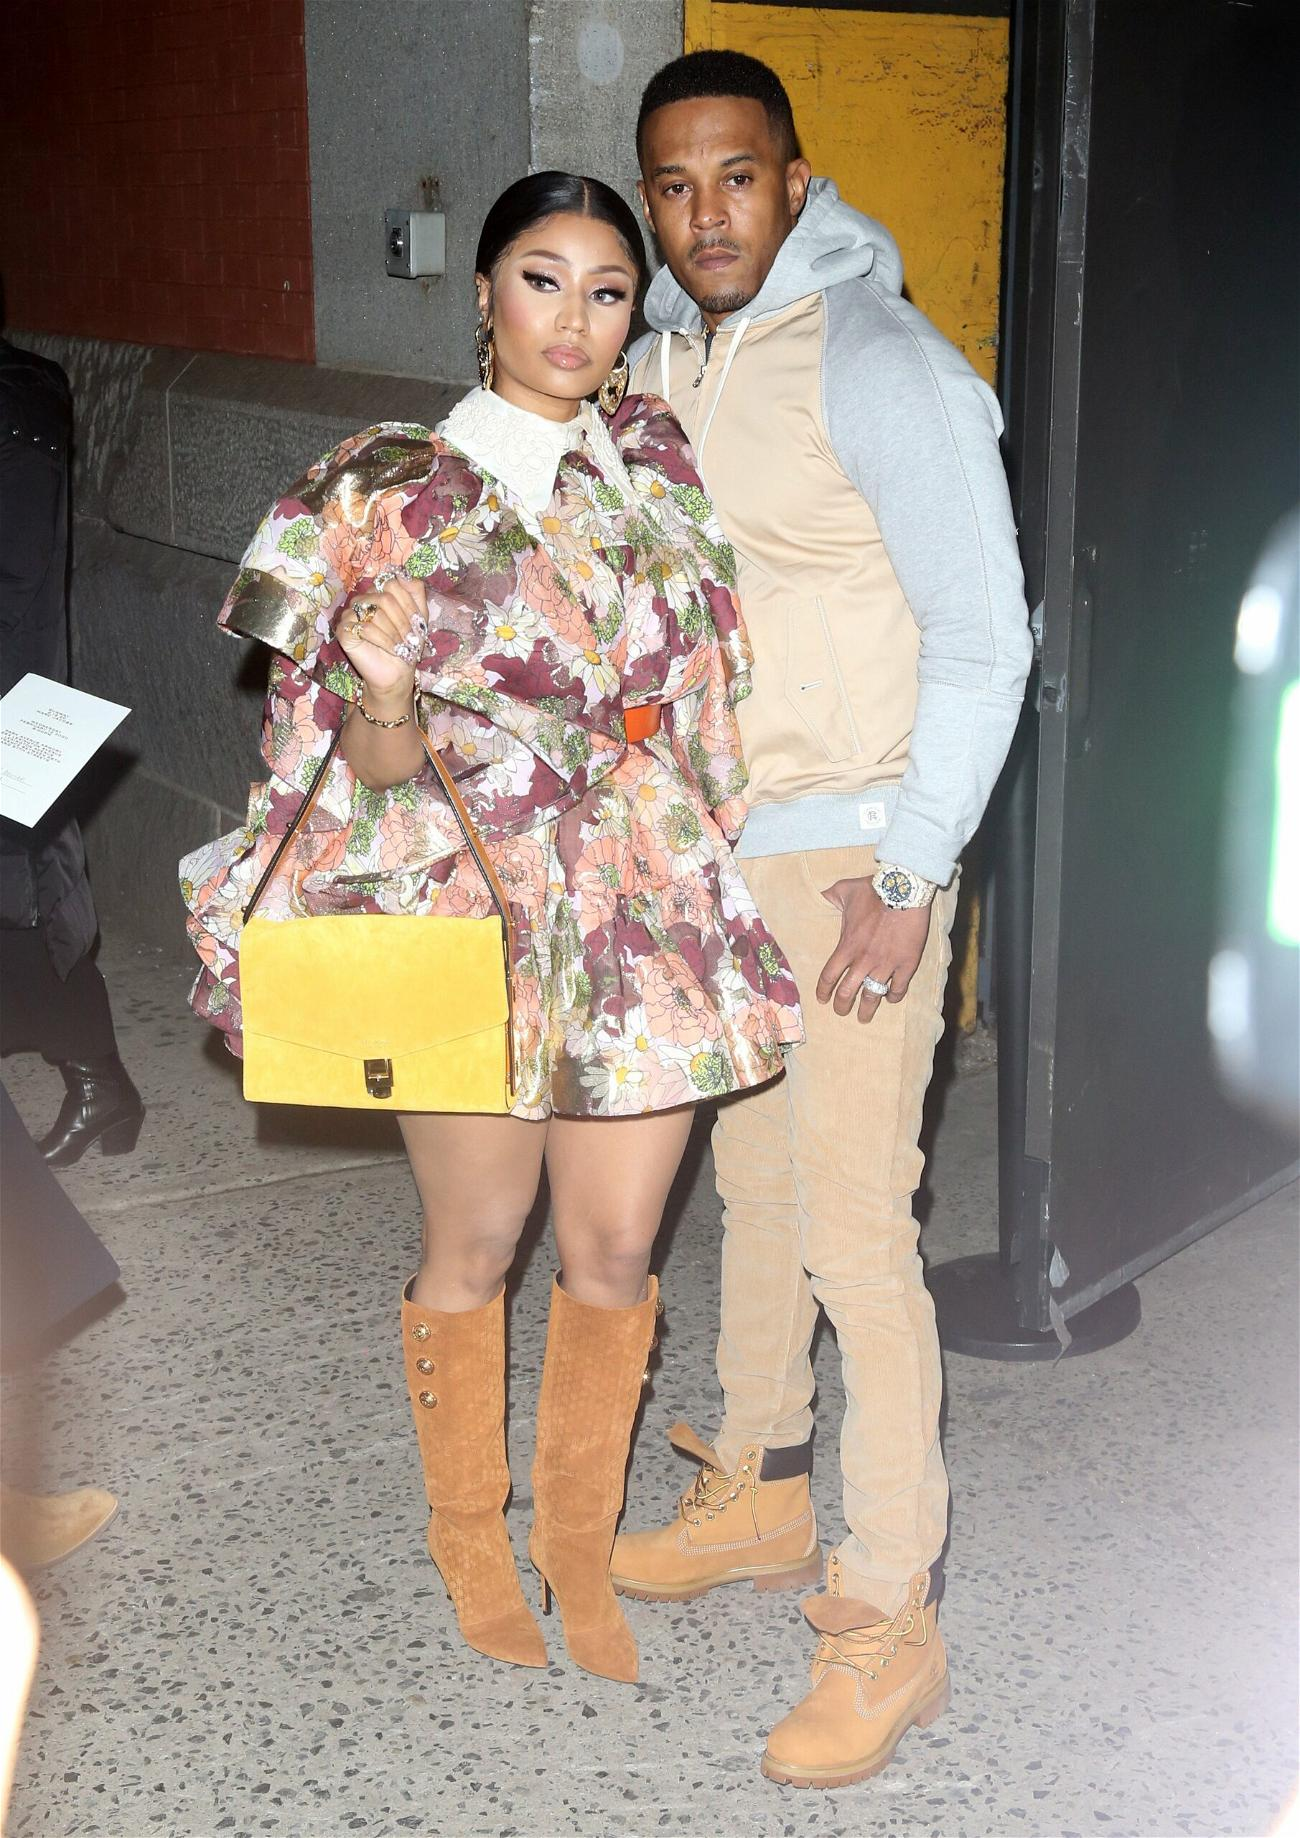 Nicki Minaj and Kenneth Petty out and about in New York City